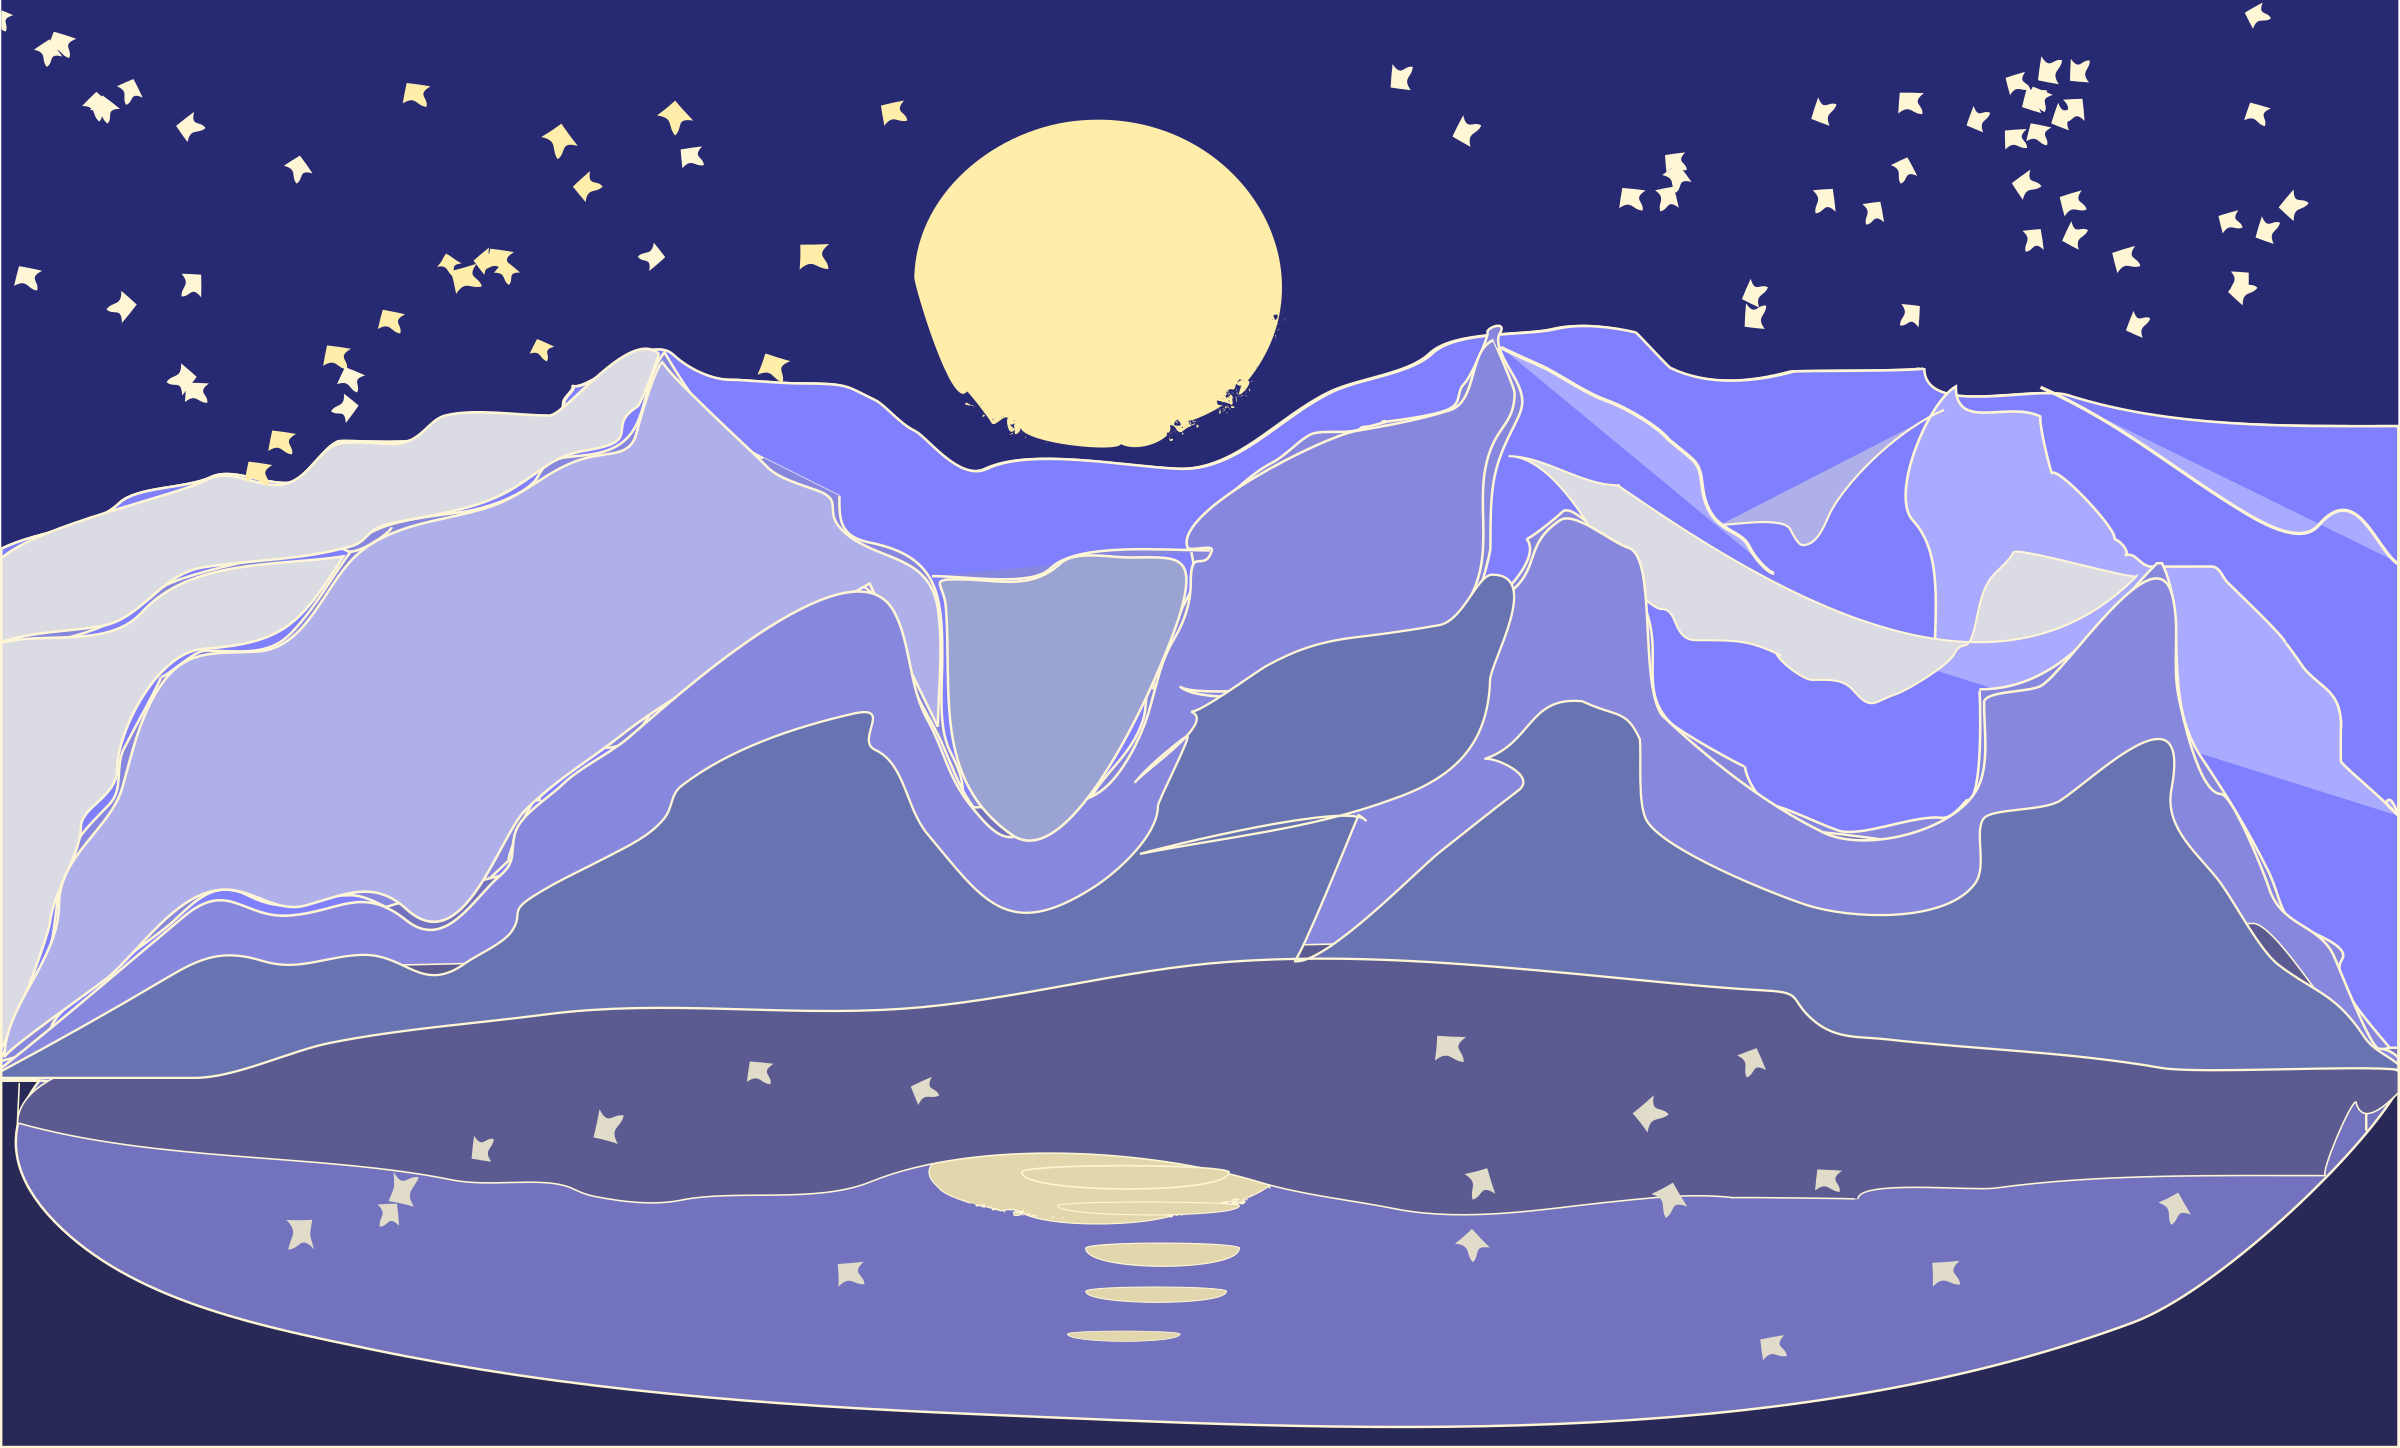 mountains night landscape by OlKu